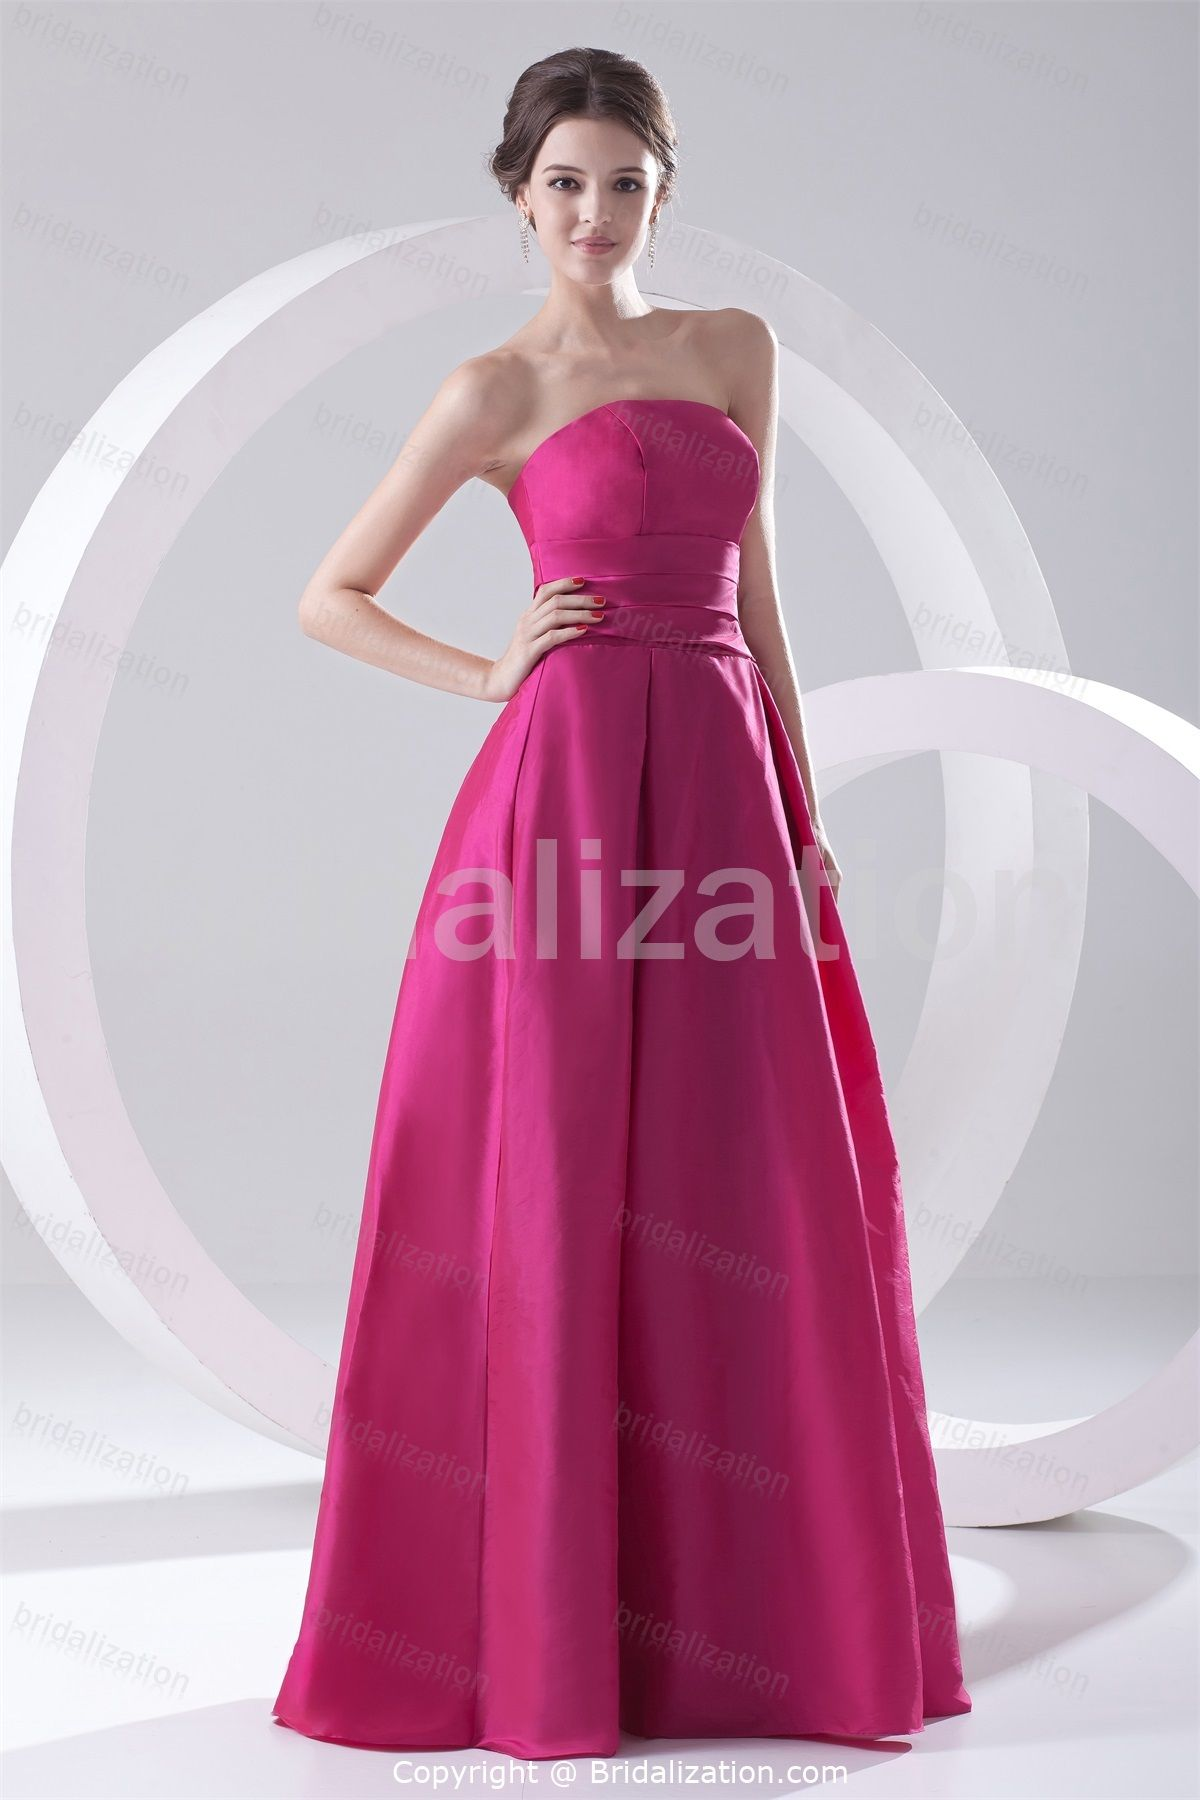 fall bridal party pictures%0A Fuchsia FloorLength Taffeta Strapless Fall Bridesmaid Dress